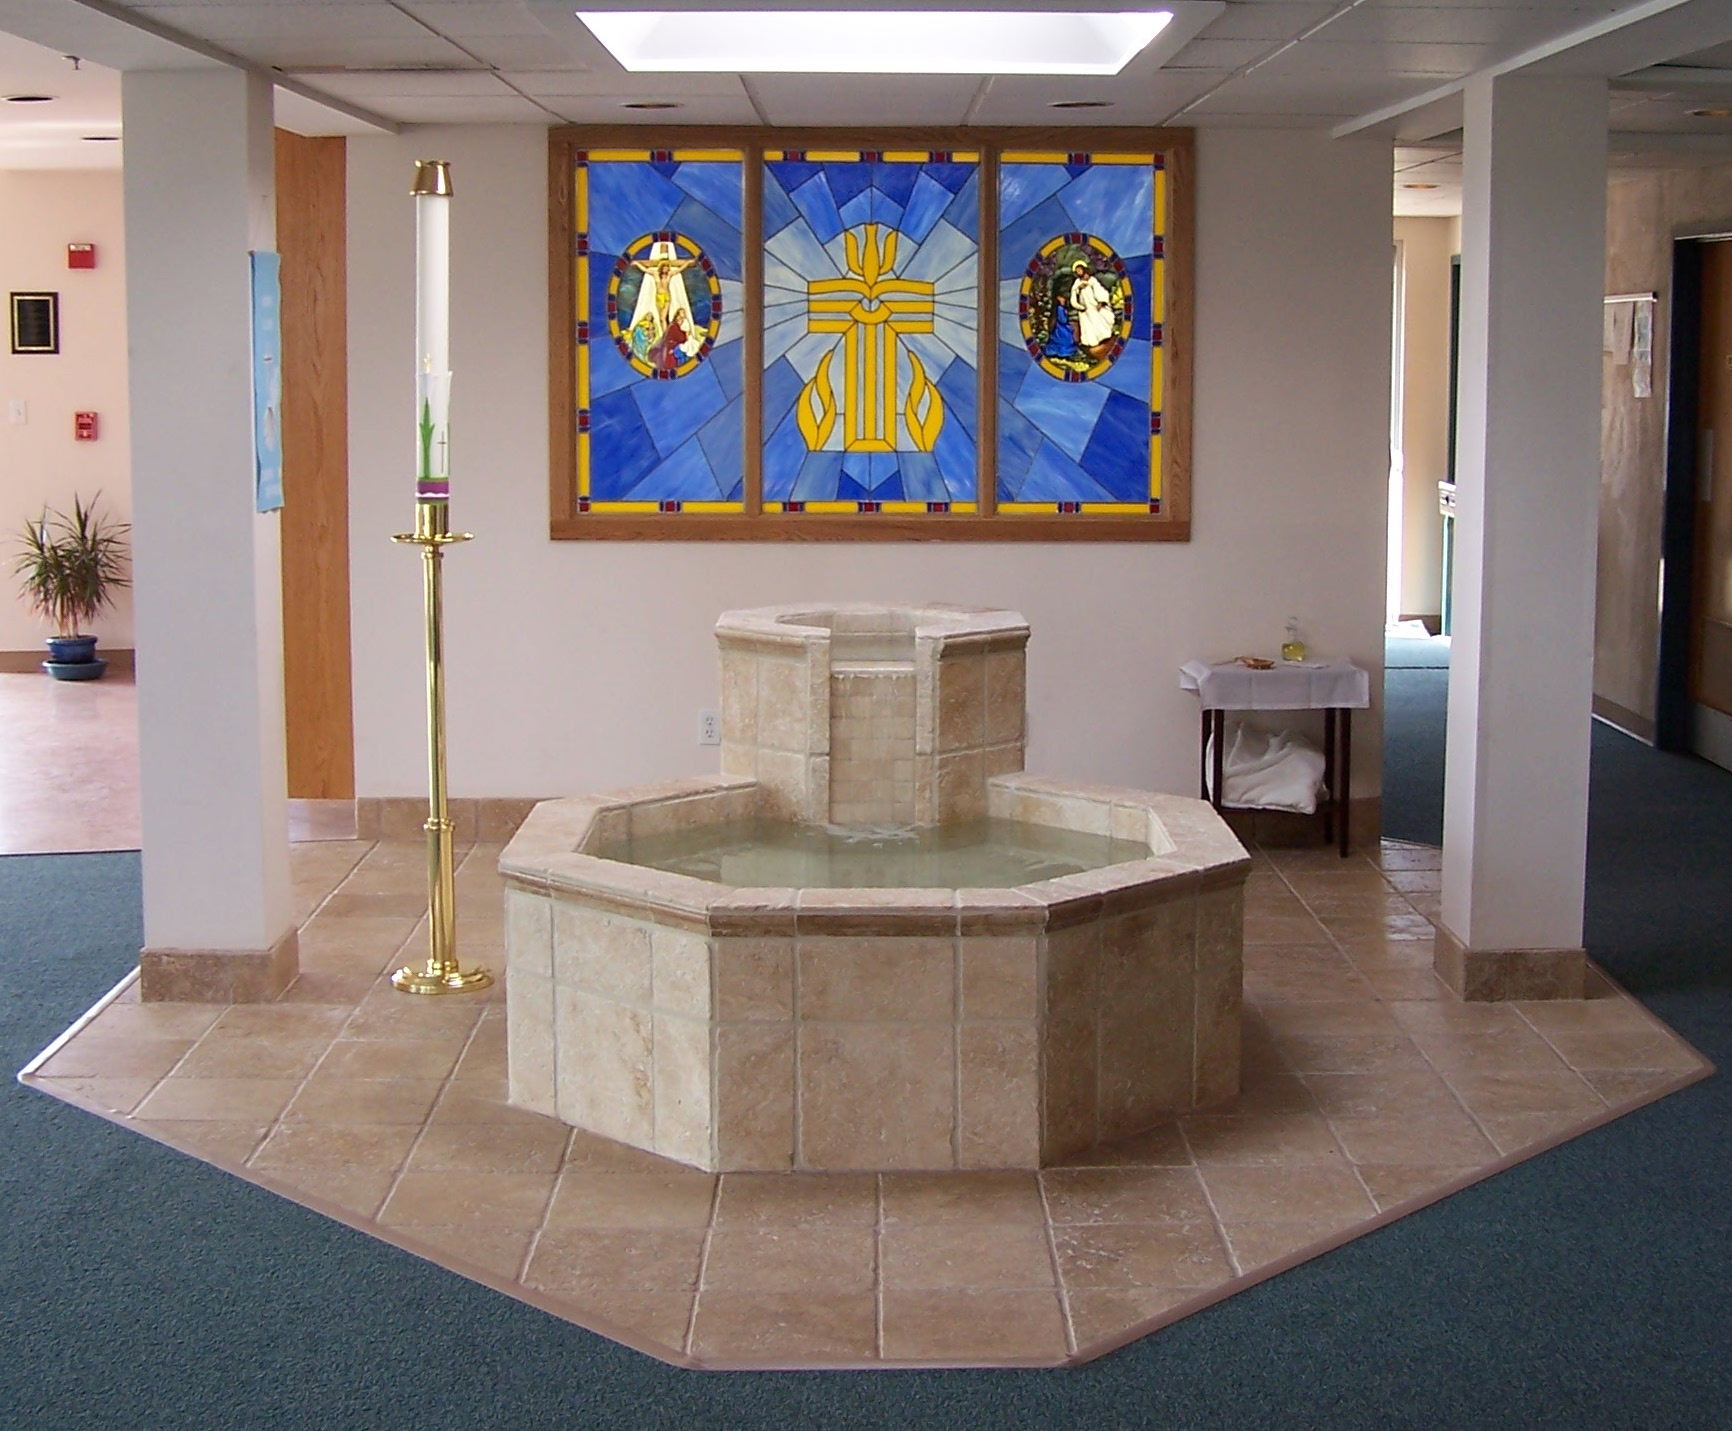 baptismal-font-grace-lutheran-church-hockessin-de-full-view-by-water-structures